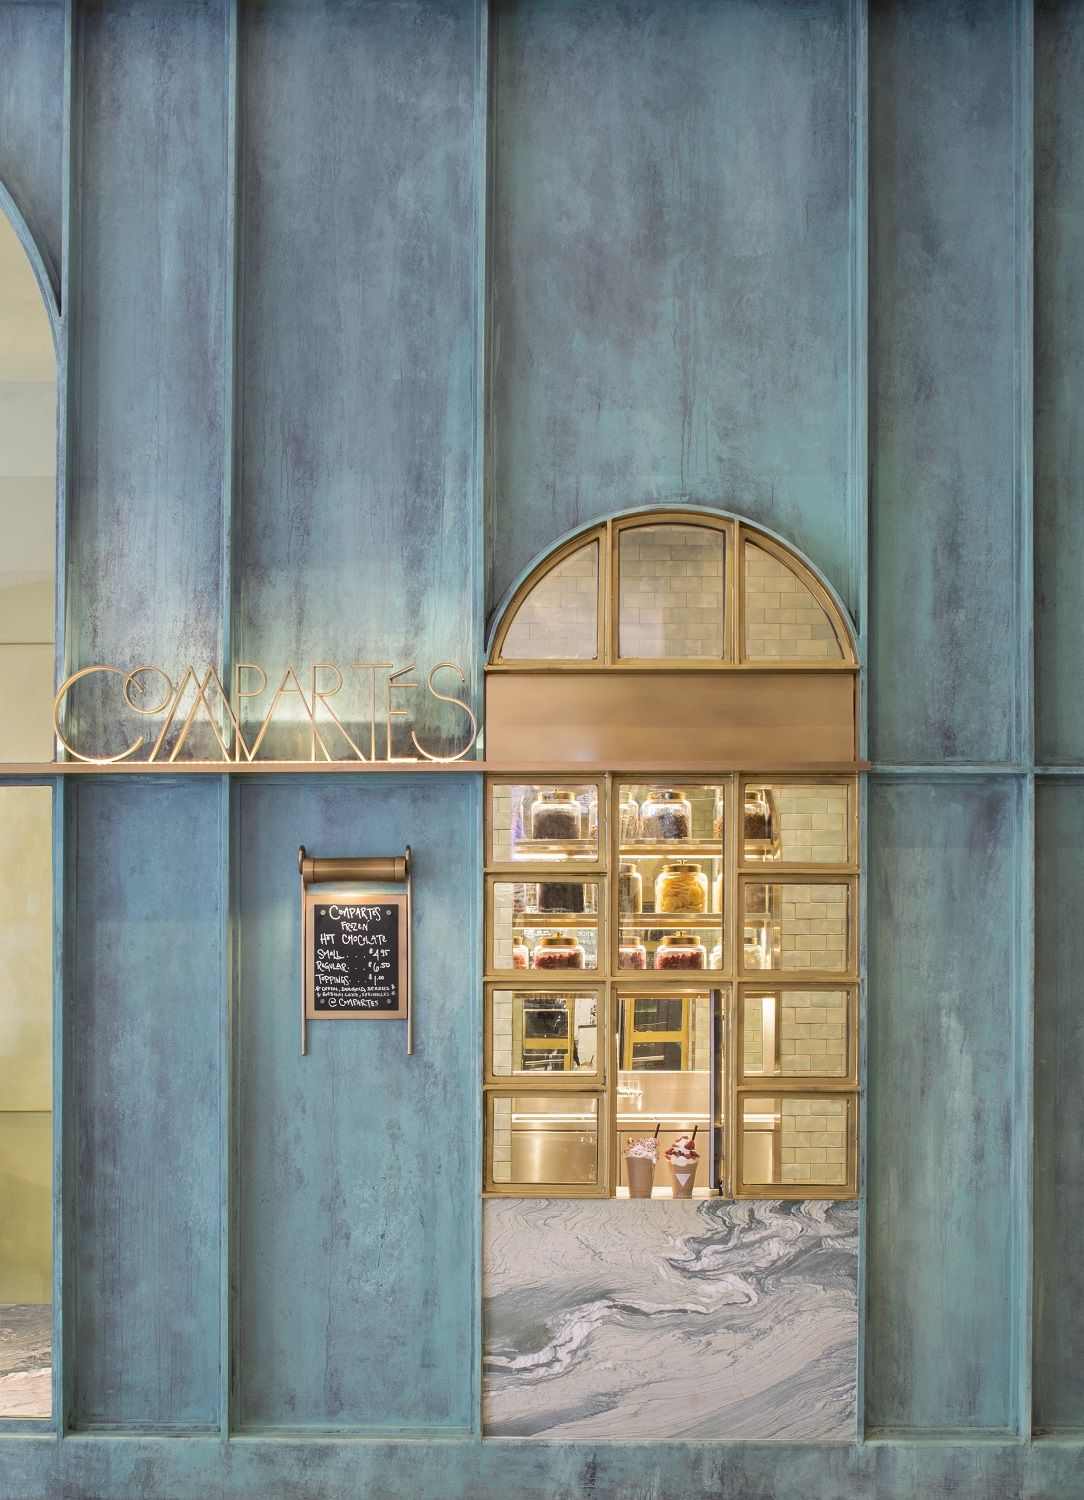 Compart s chocolate opens a dusky emerald flagship in los angeles restaurants and shops for Modern interior doors los angeles